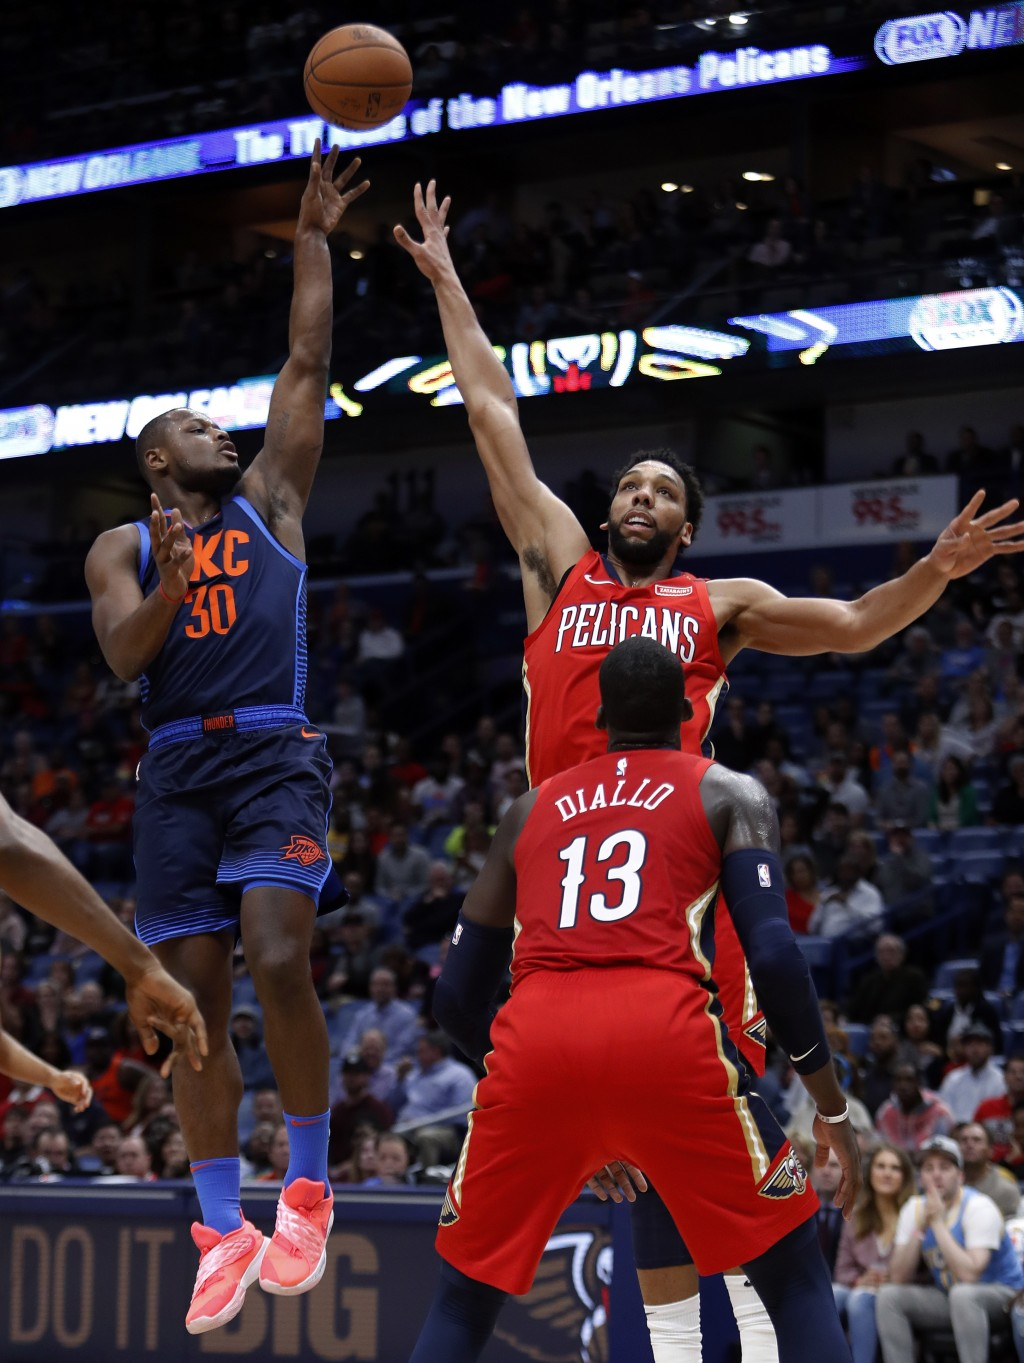 Oklahoma City Thunder guard Deonte Burton (30) shoots over New Orleans Pelicans center Jahlil Okafor, right rear, during the first half of an NBA bask...